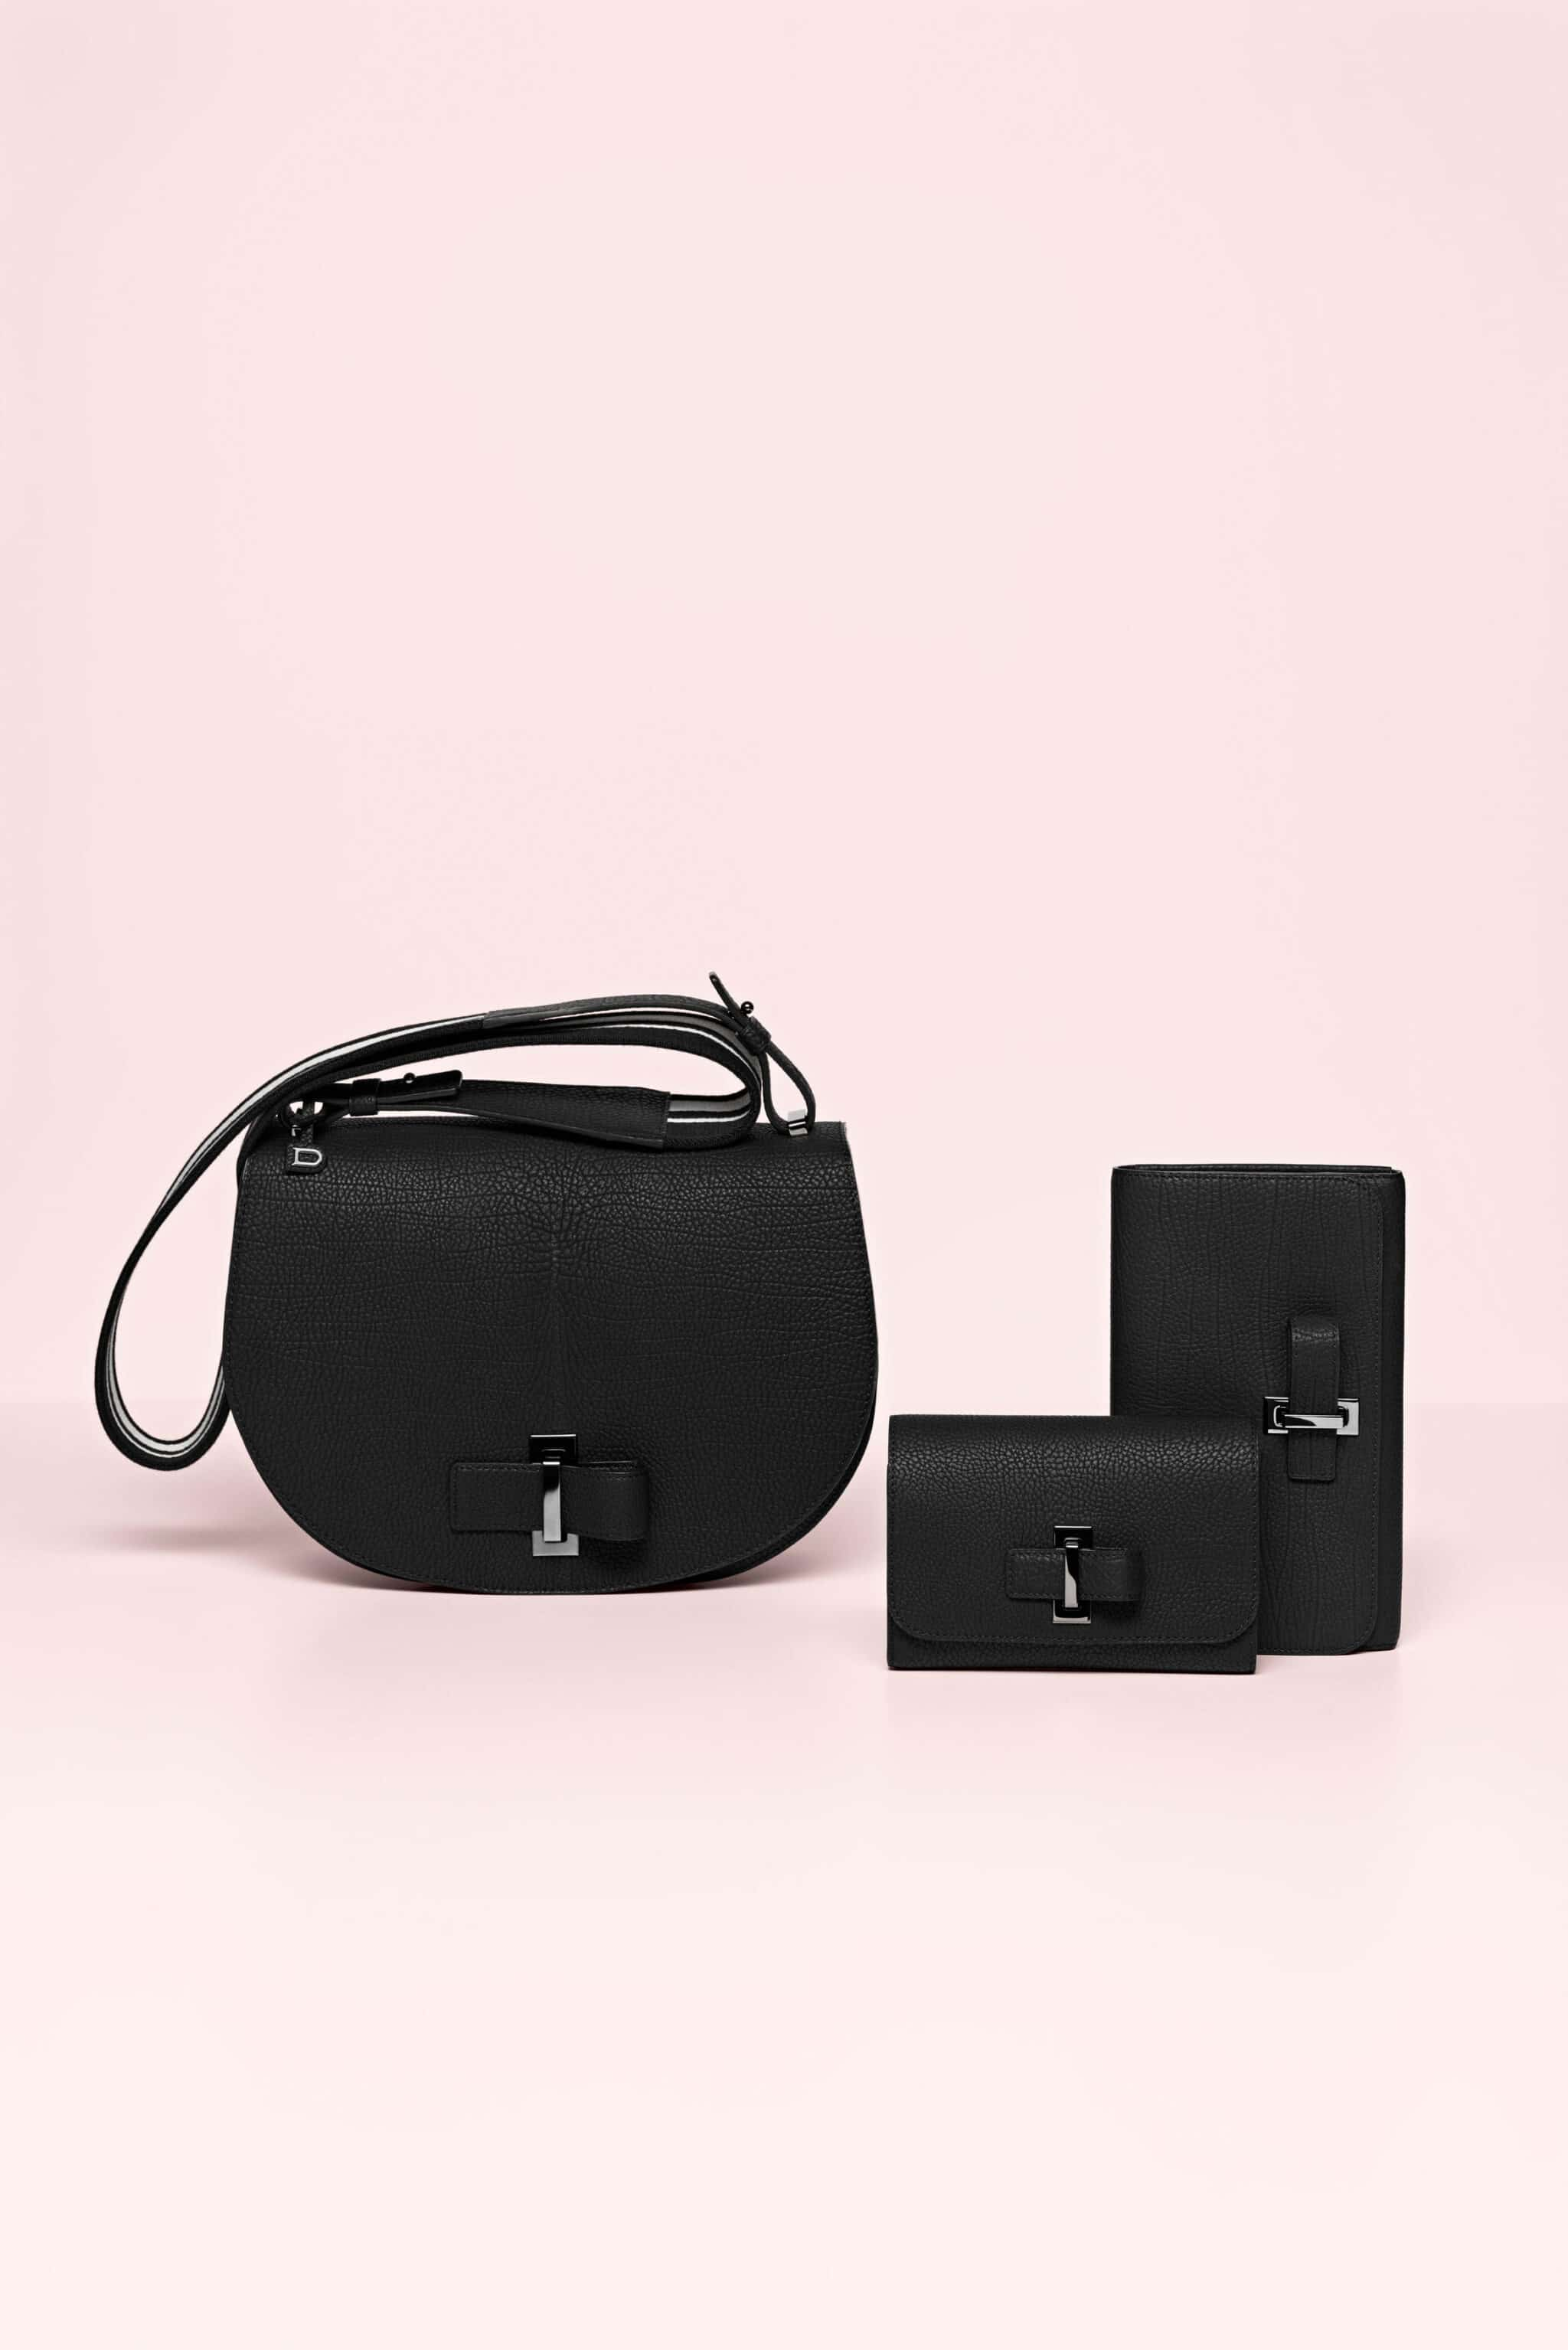 Delvaux Spring Summer 2017 Bag Collection Spotted Fashion